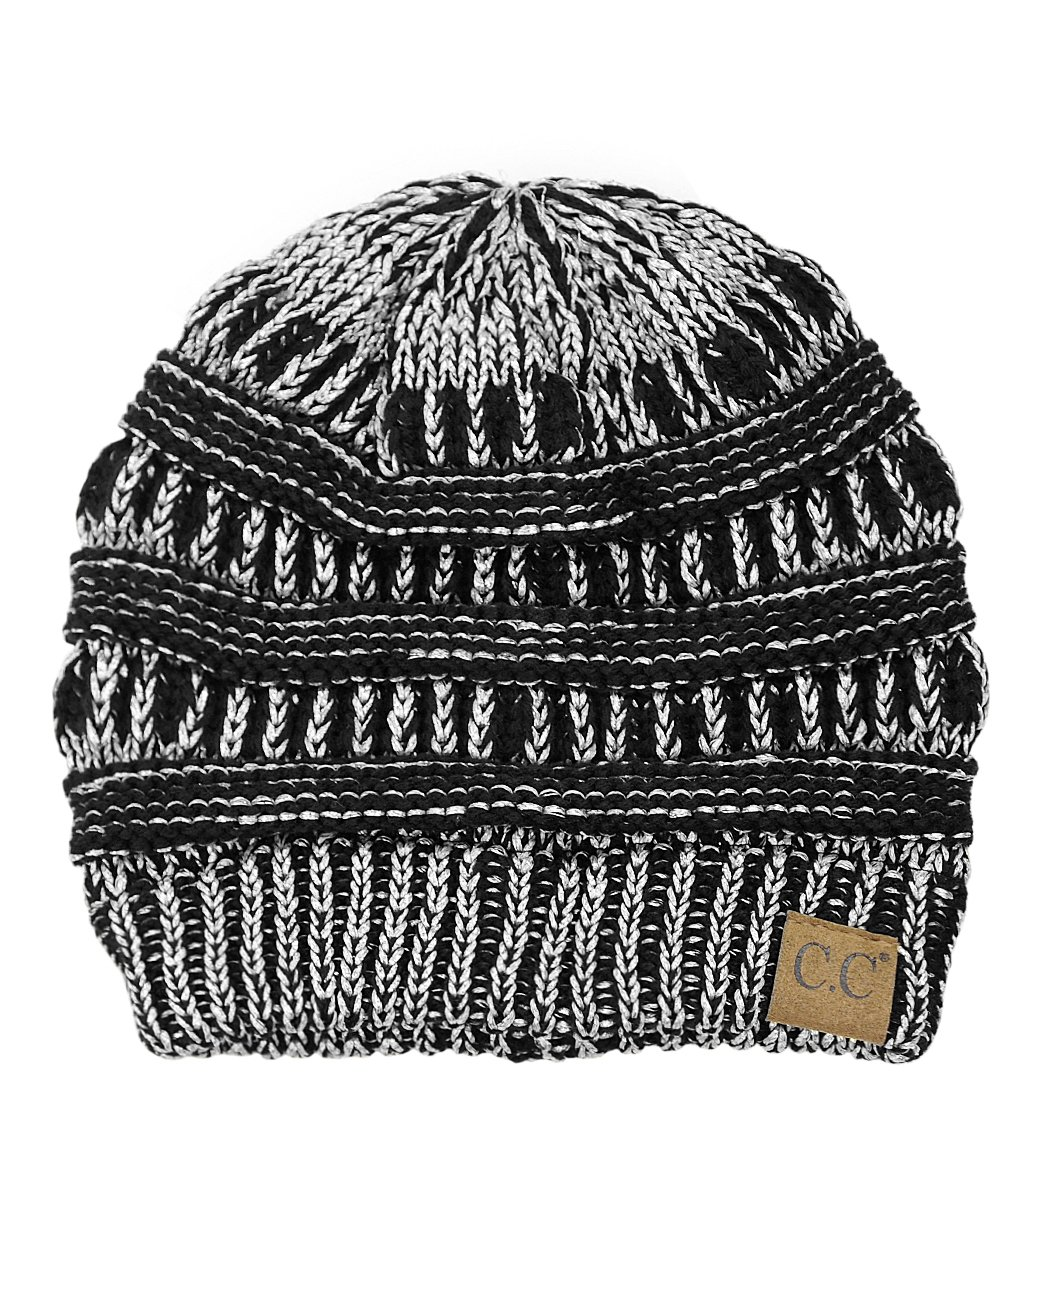 C.C Trendy Warm Chunky Soft Stretch Cable Knit Beanie Skully, Black/Met. Silver